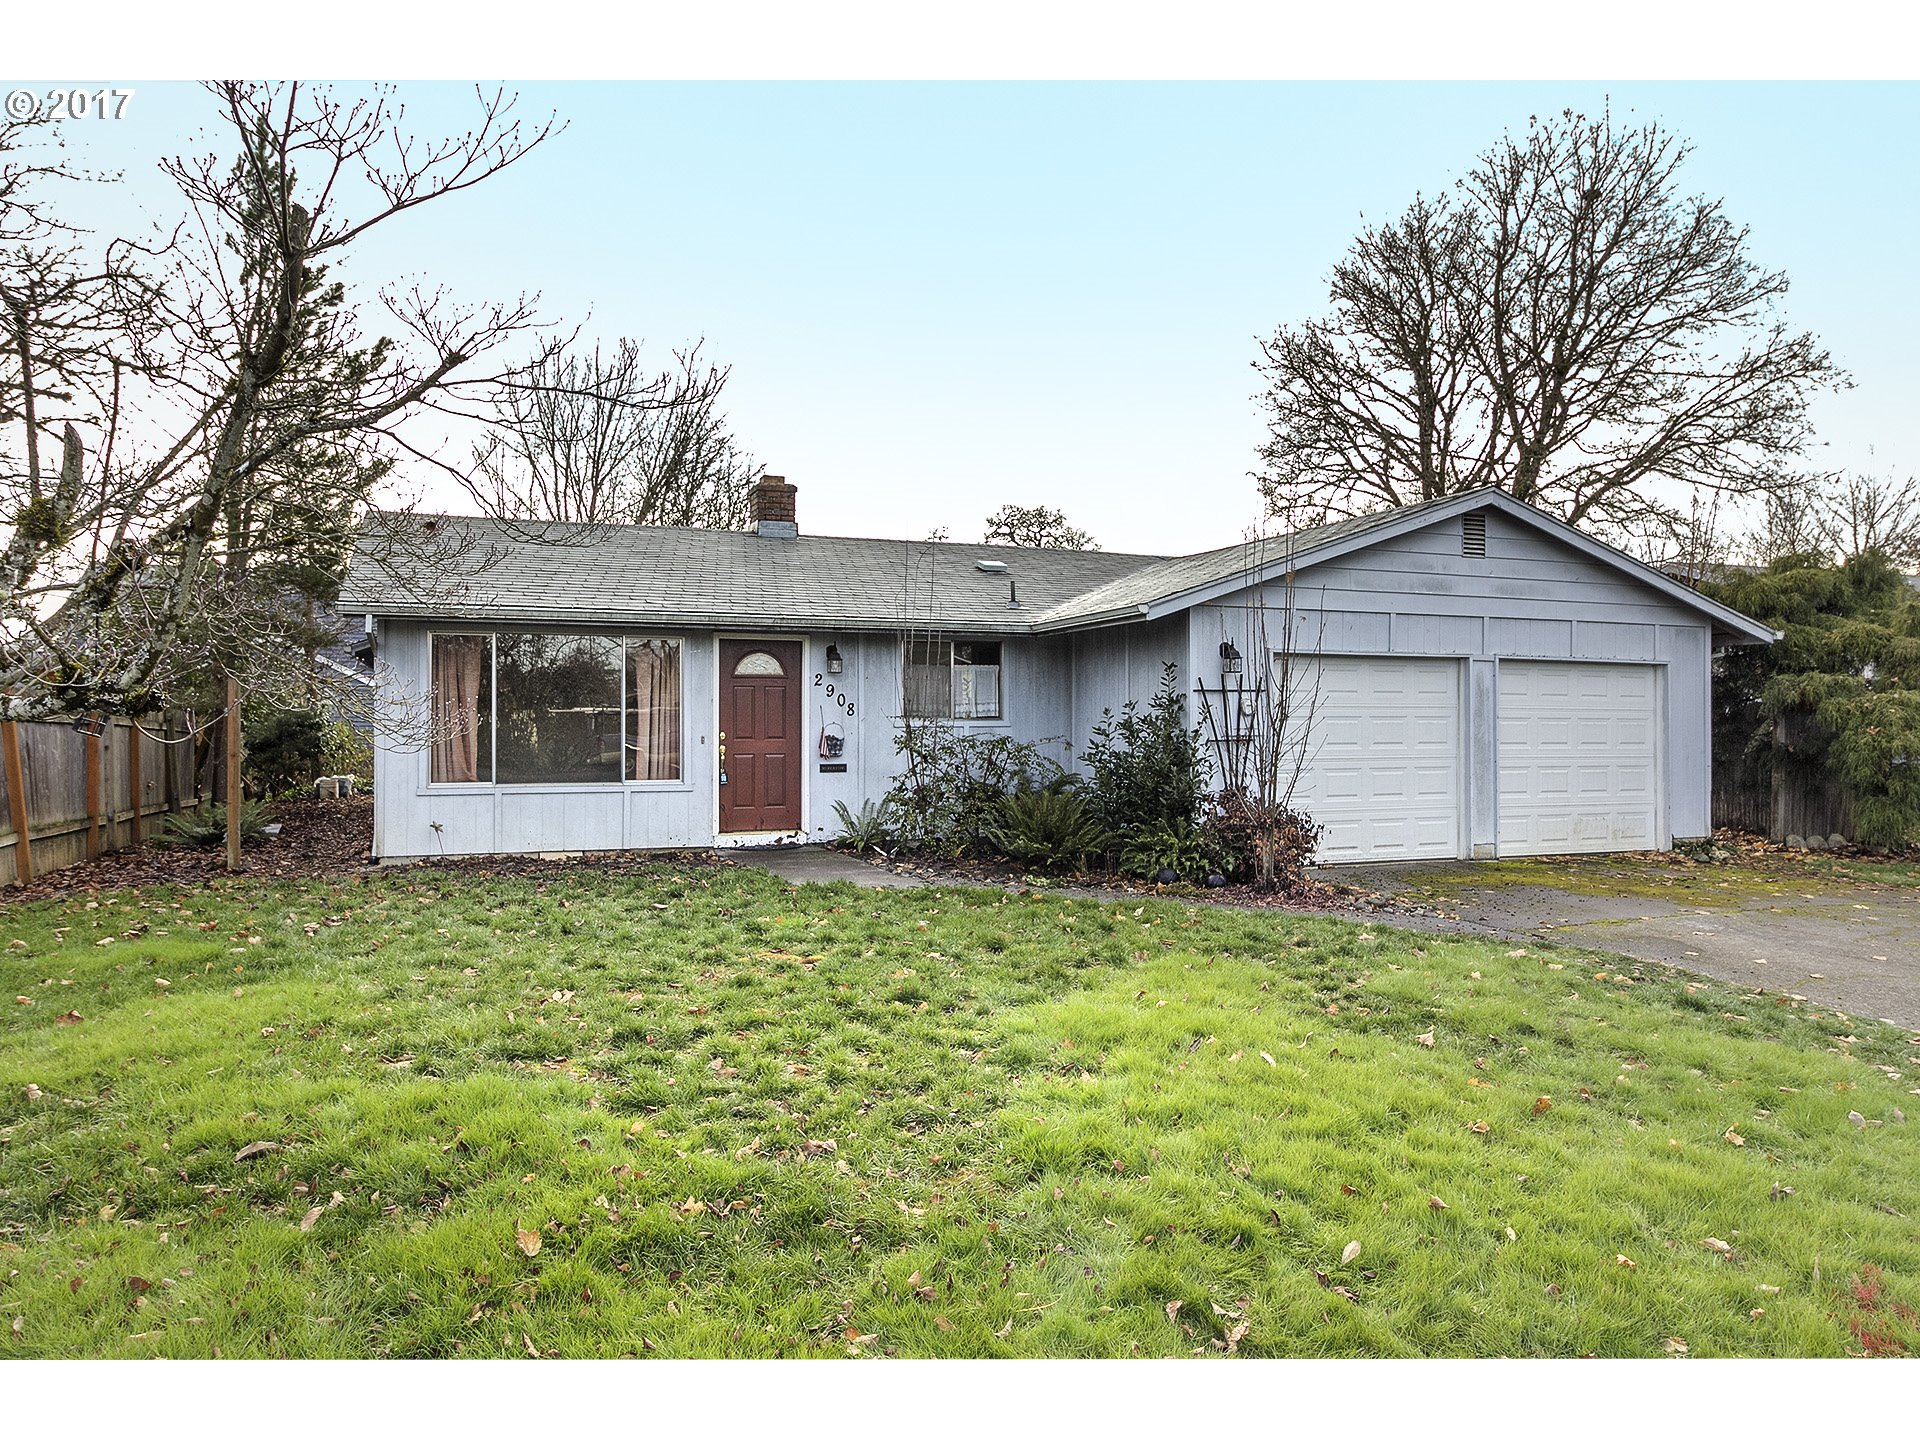 2908 15TH PL, Forest Grove OR 97116